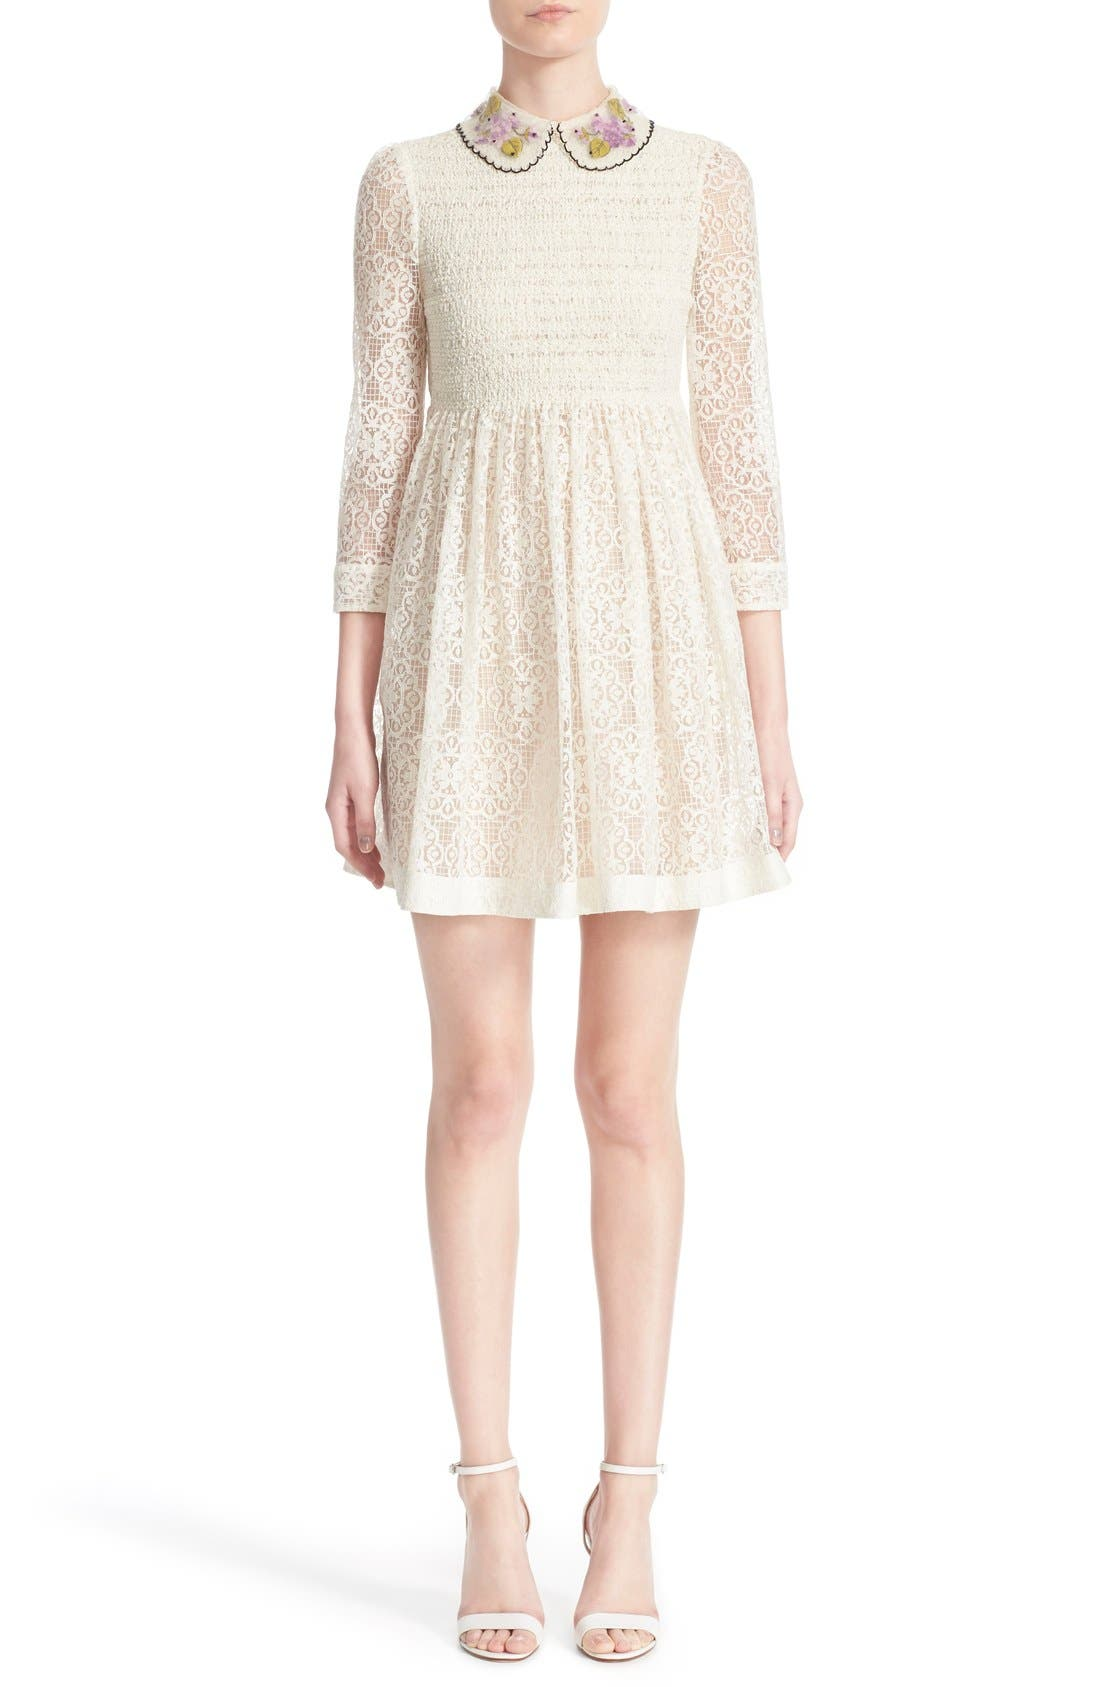 RED VALENTINO Smocked Bodice Lace Dress, Main, color, 900